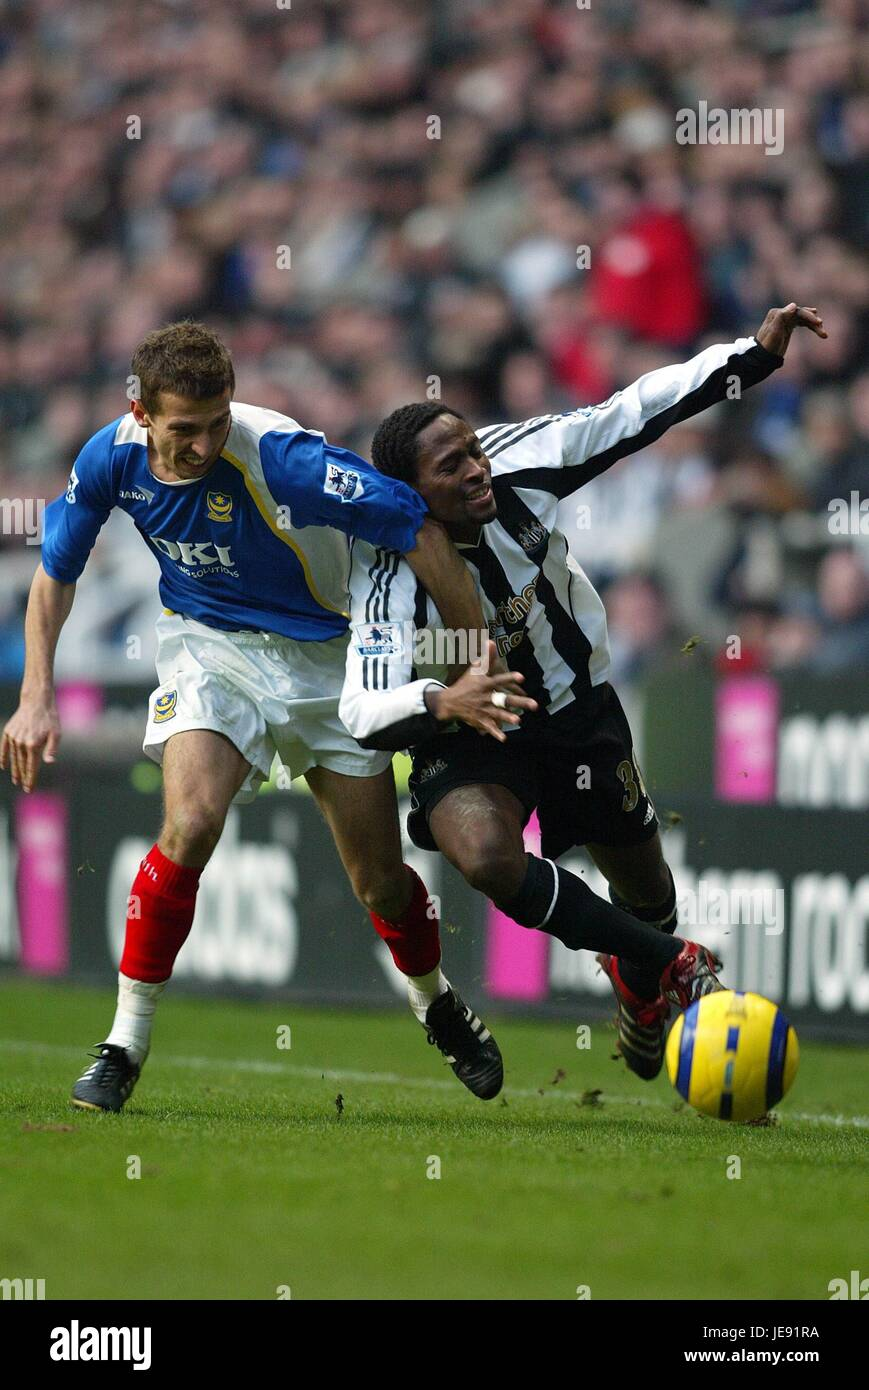 GARY O'NEIL CELESTINE BABAYARO NEWCASTLE UTD V PORTSMOUTH ST JAMES PARK NEWCASTLE ENGLAND 04 February 2006 - Stock Image